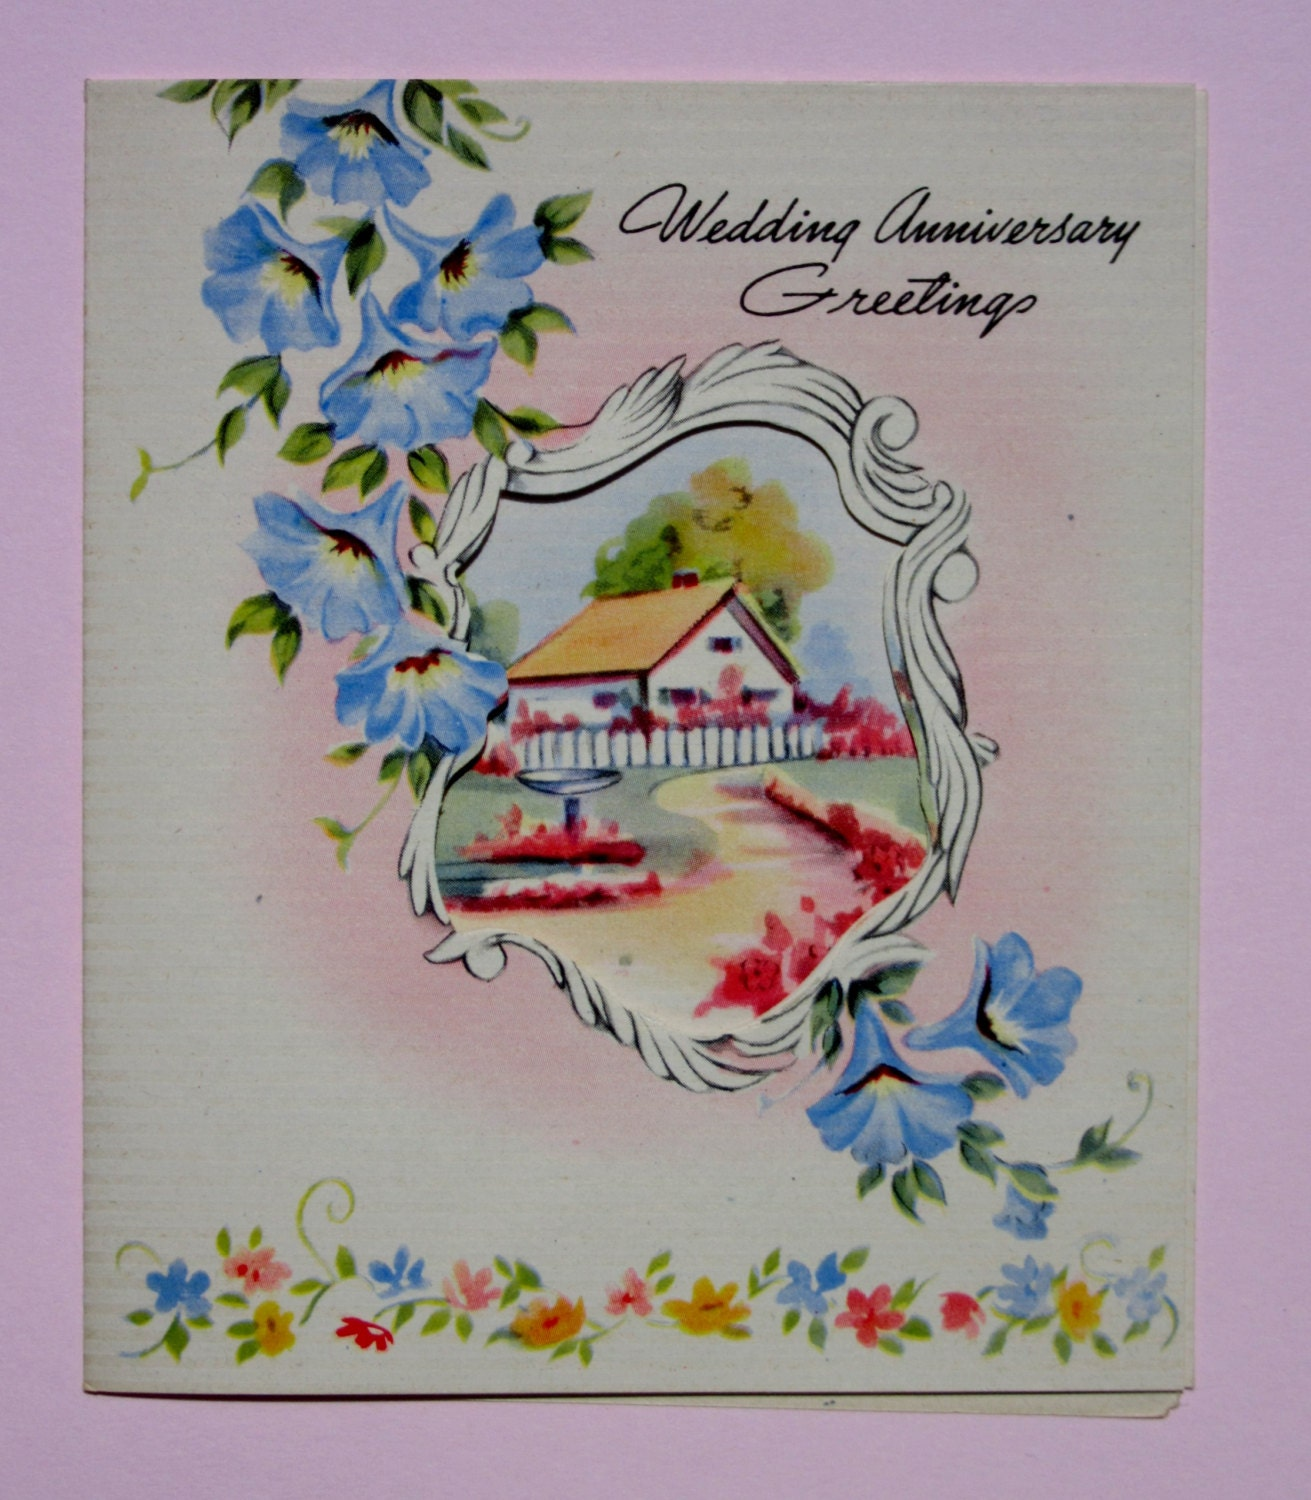 Vintage wedding anniversary greeting card featuring beautiful zoom kristyandbryce Image collections